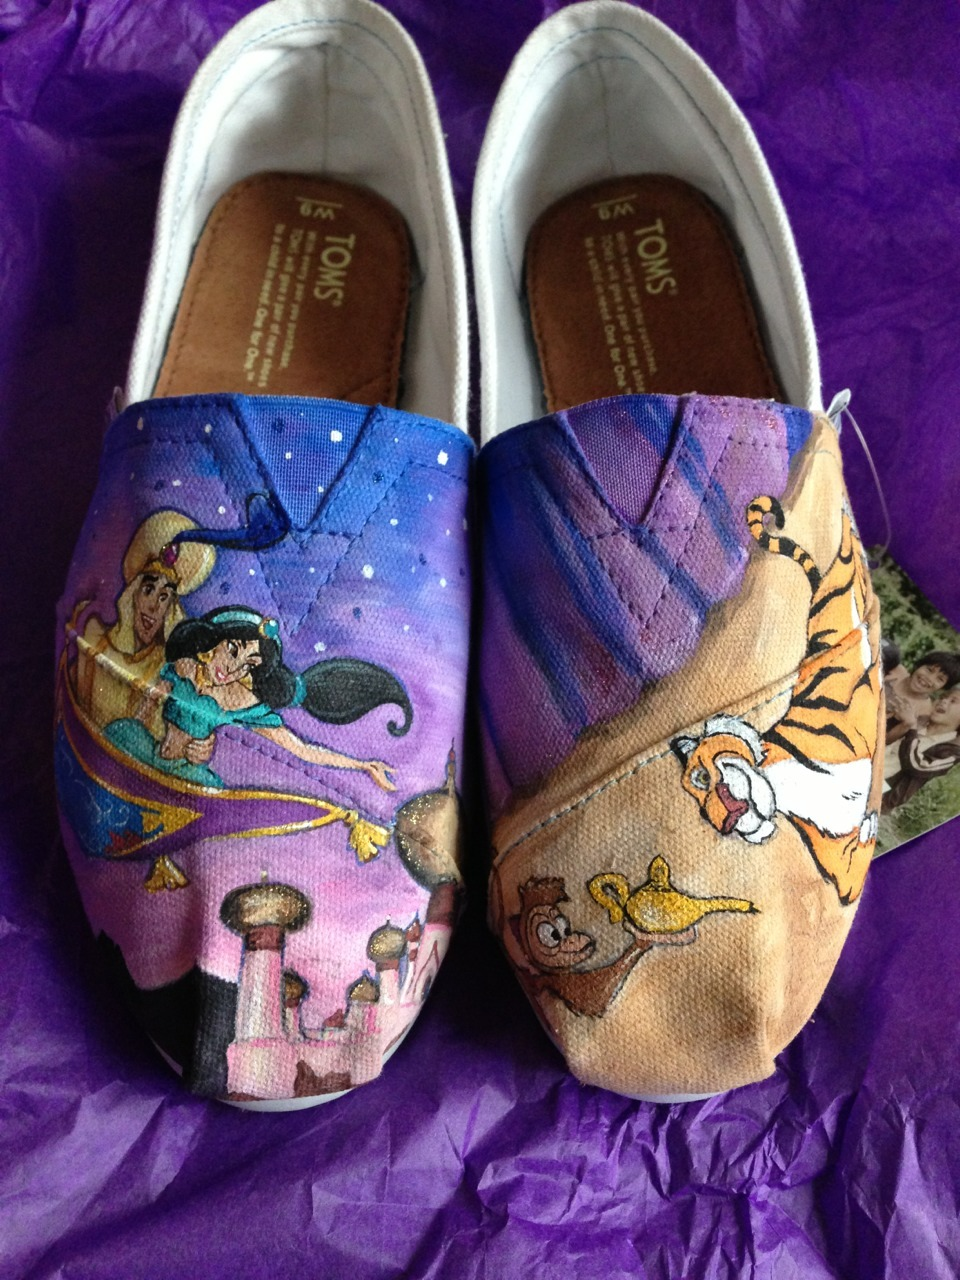 deathcabforangie:  disney toms finally came in! art by emily painter of painted lace studios.